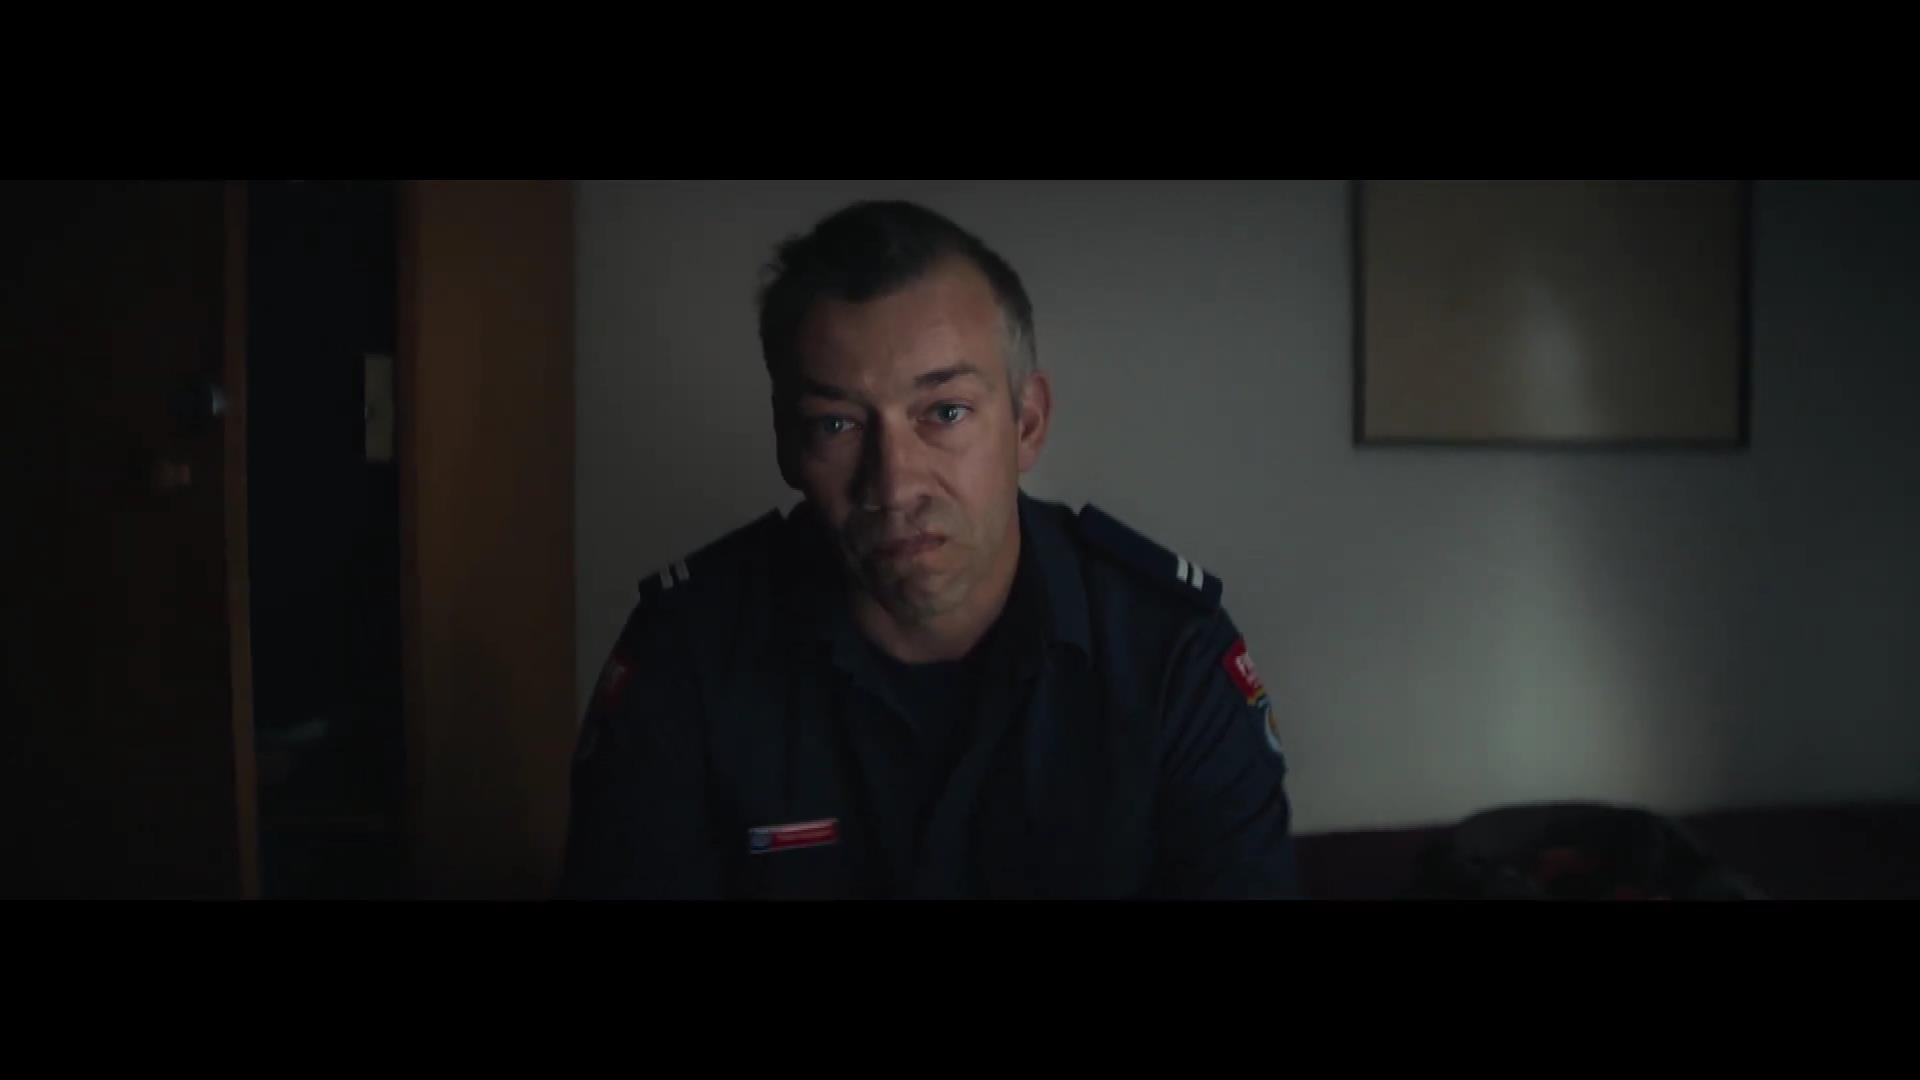 Fire and Emergency New Zealand Firefighters Don't Like Fire Movies